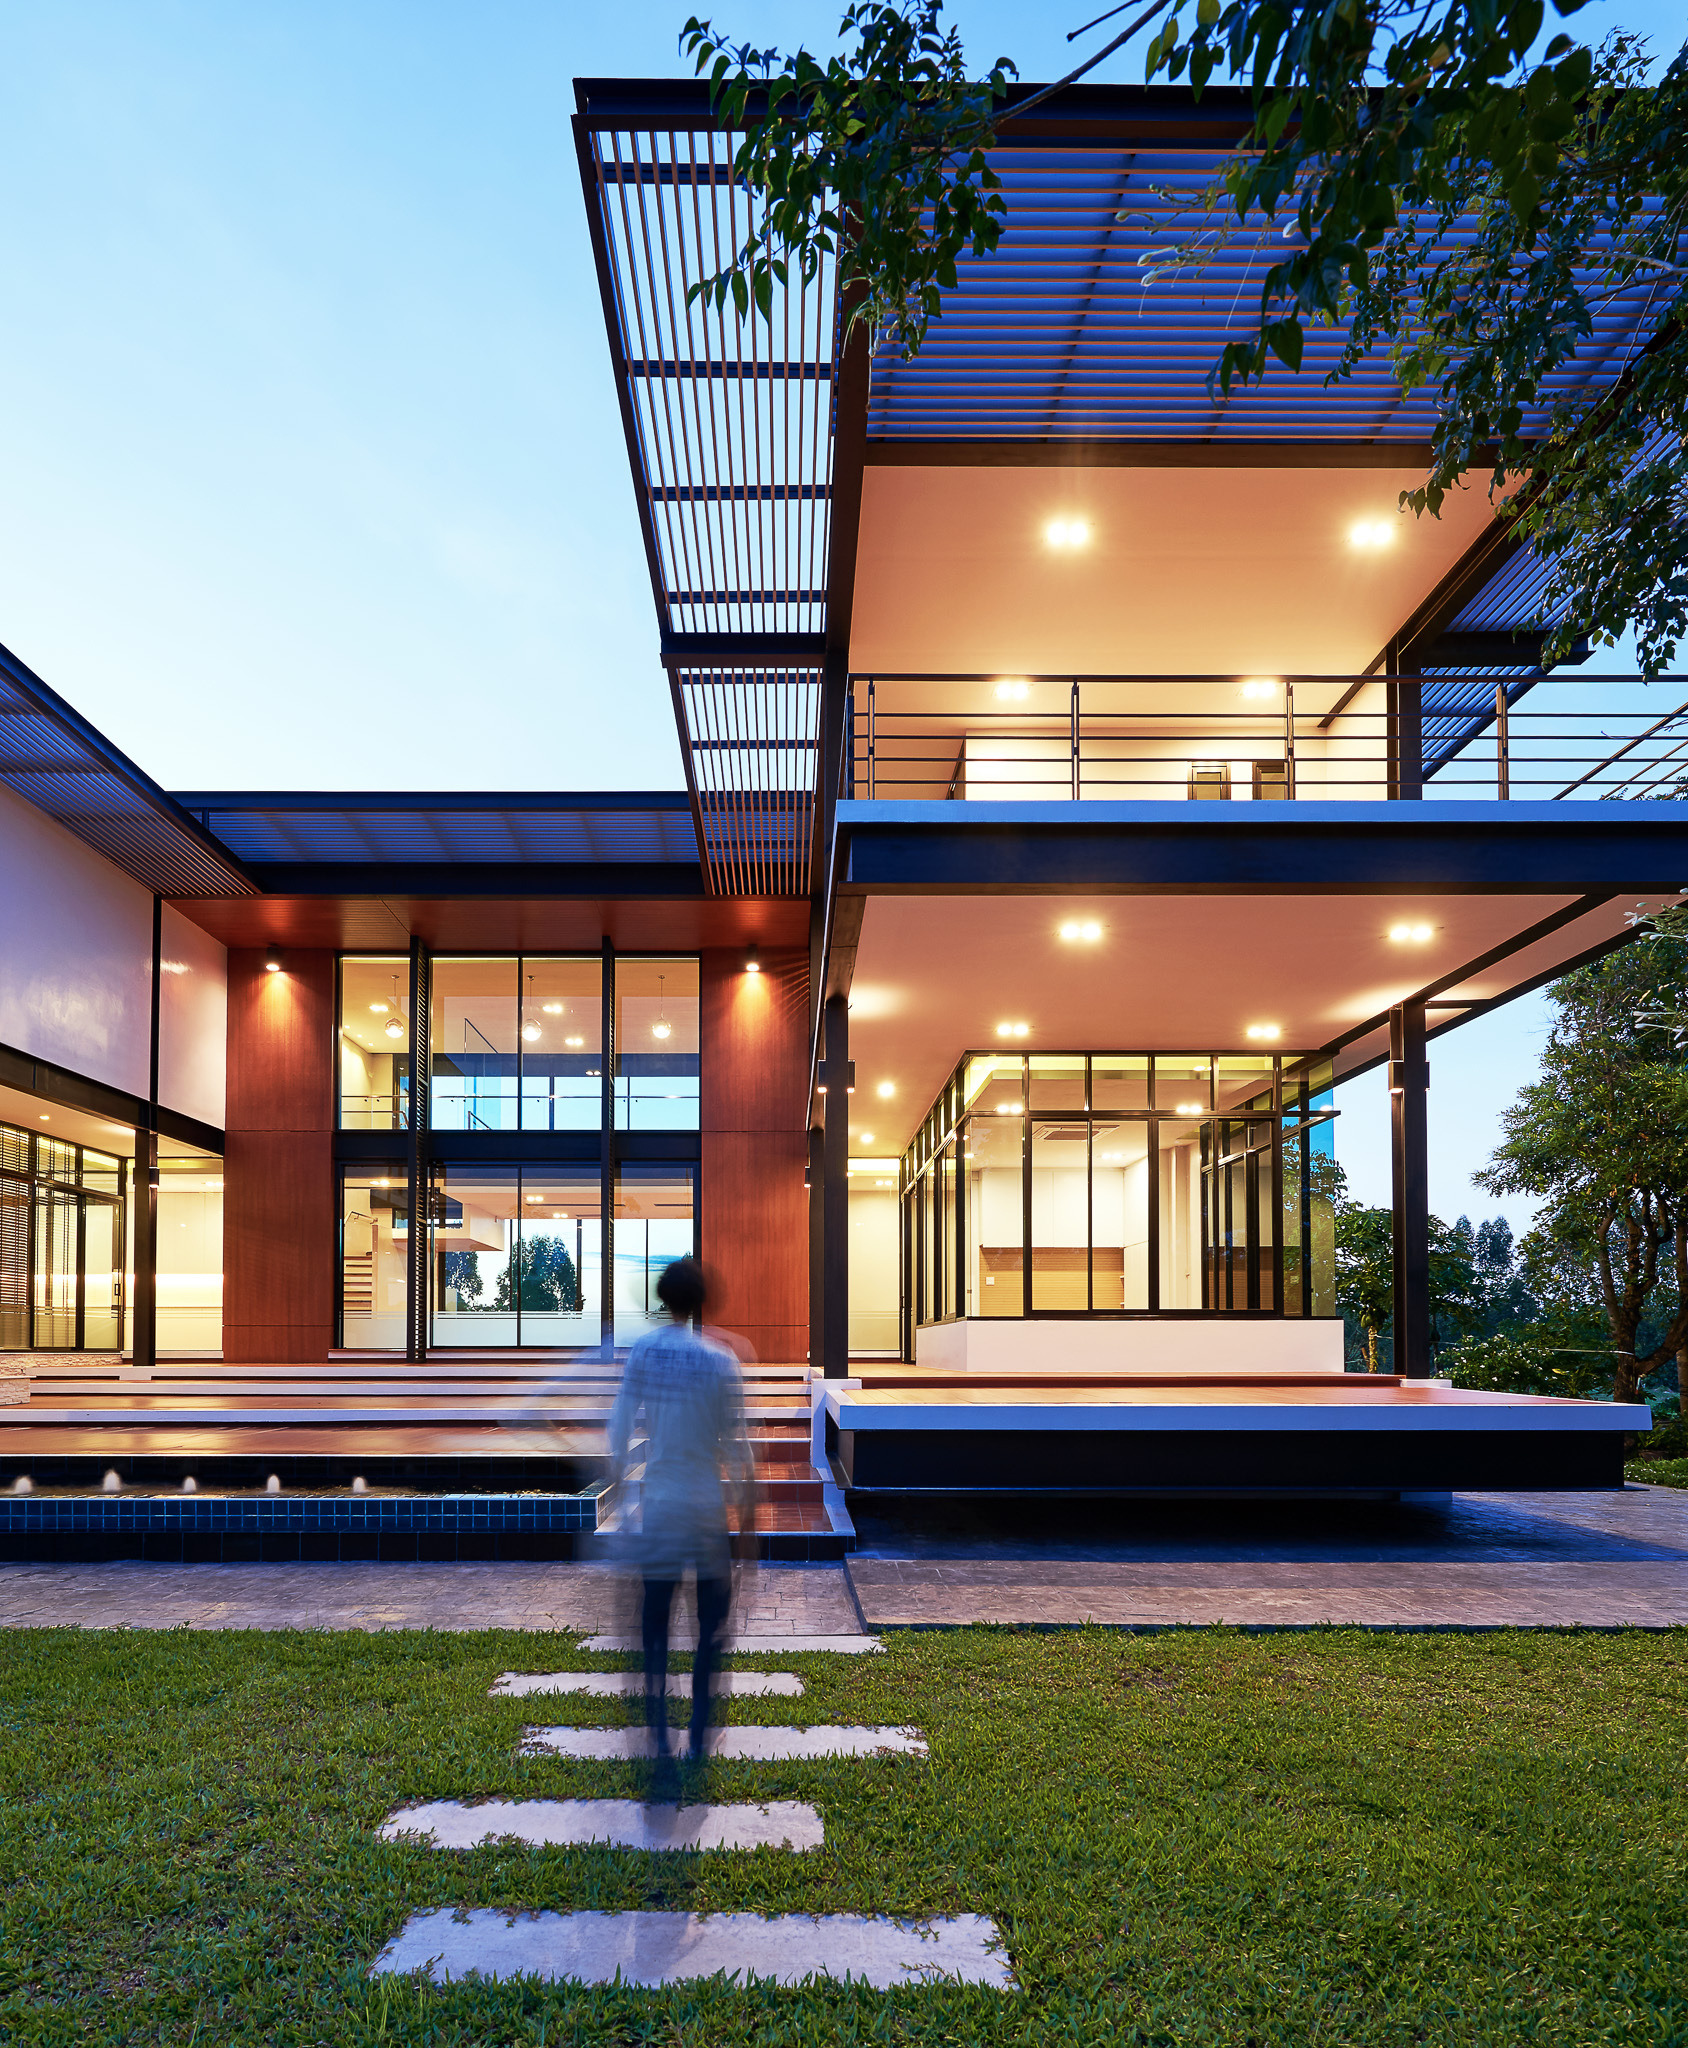 Best Houses In the World Architecture Luxury K Por House Sute Architect